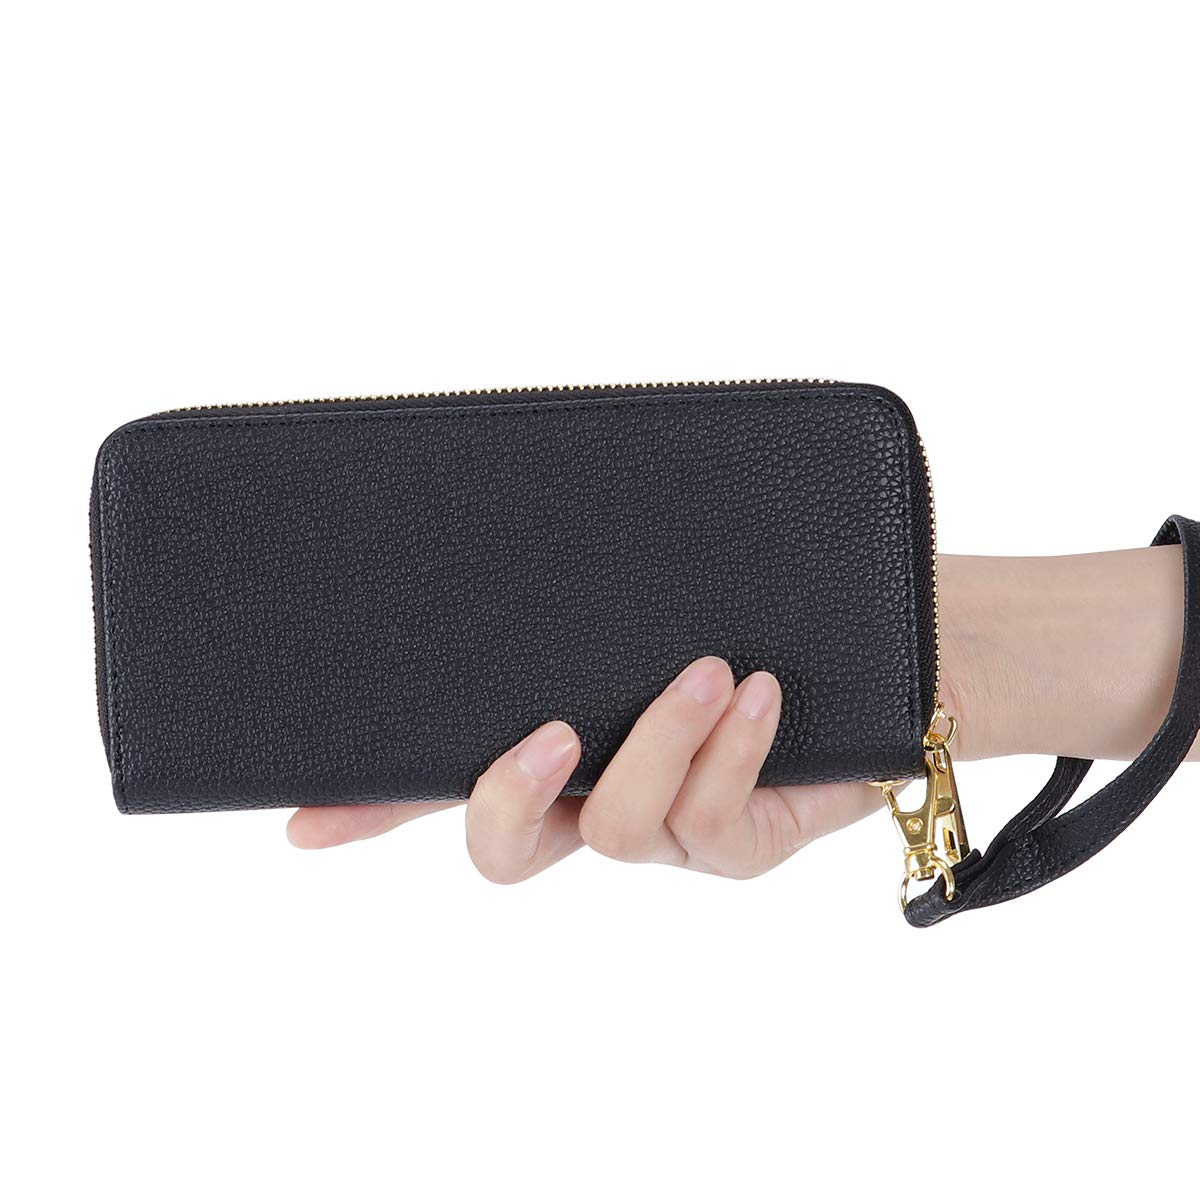 Embossing Peony HAWEE Leather Clutch Wallet for Women Zippered Wristlet Bag